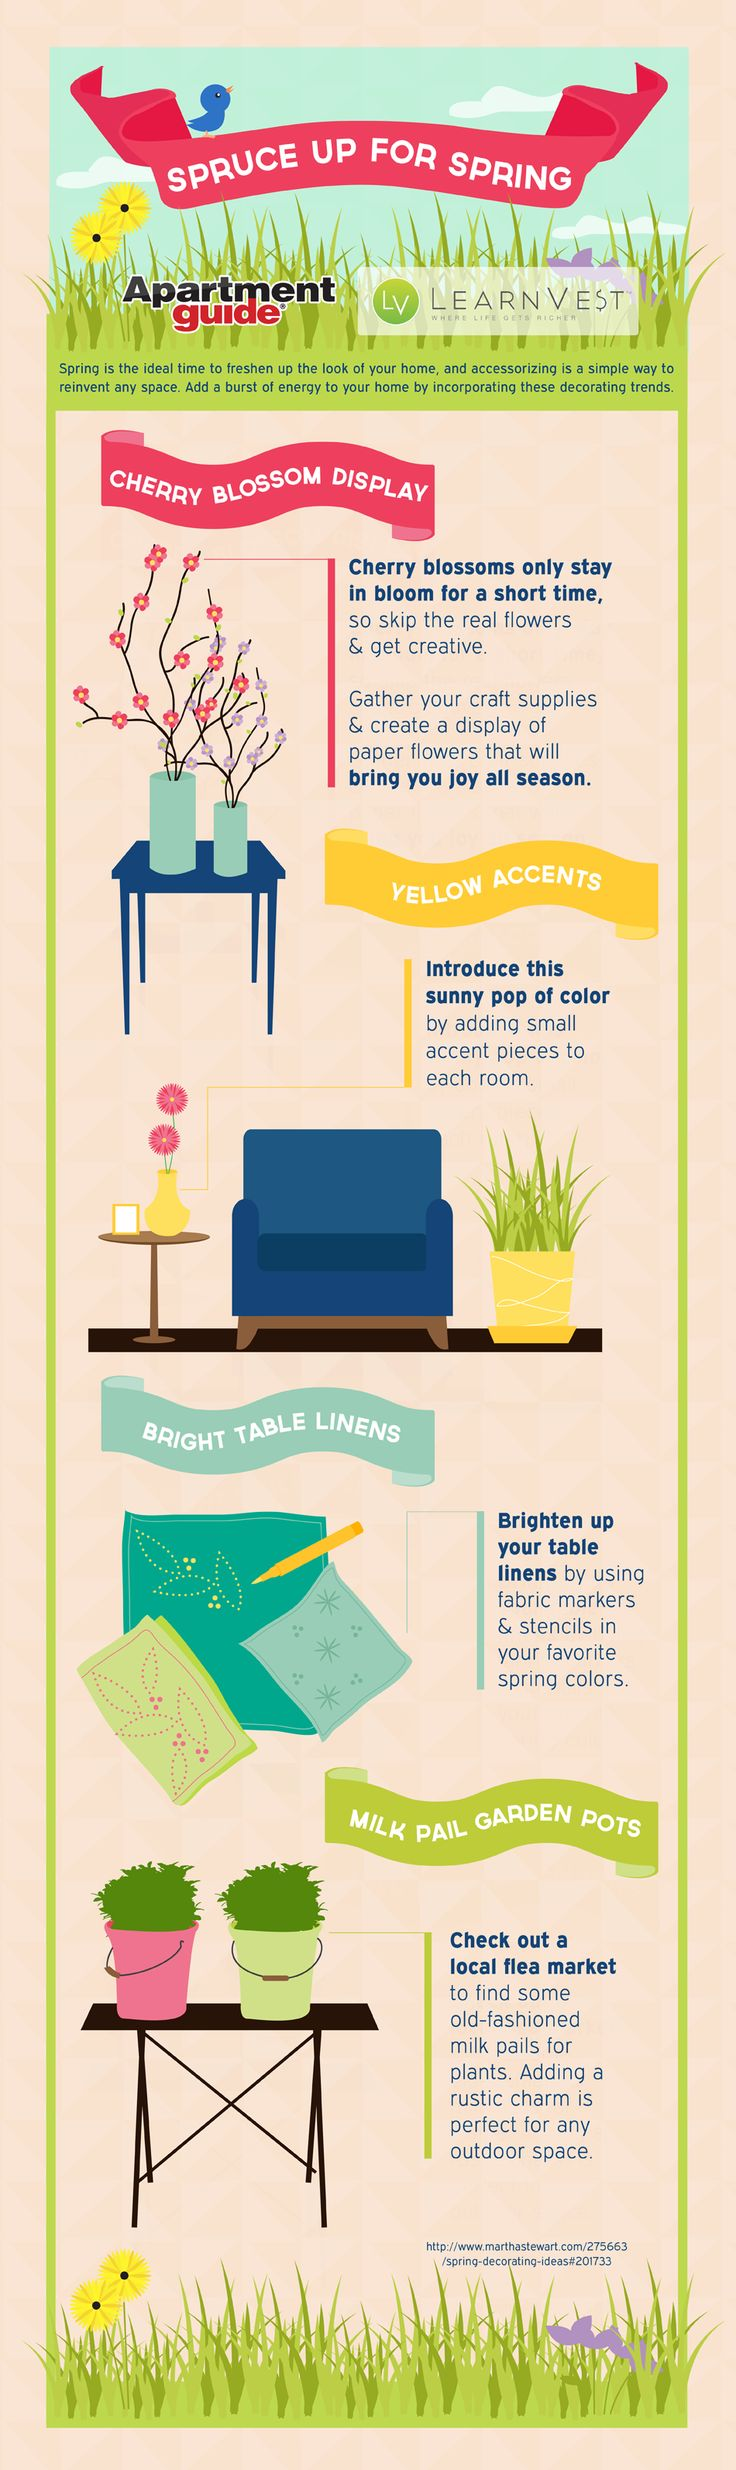 9 best Apartment Cleaning images on Pinterest | For the home ...